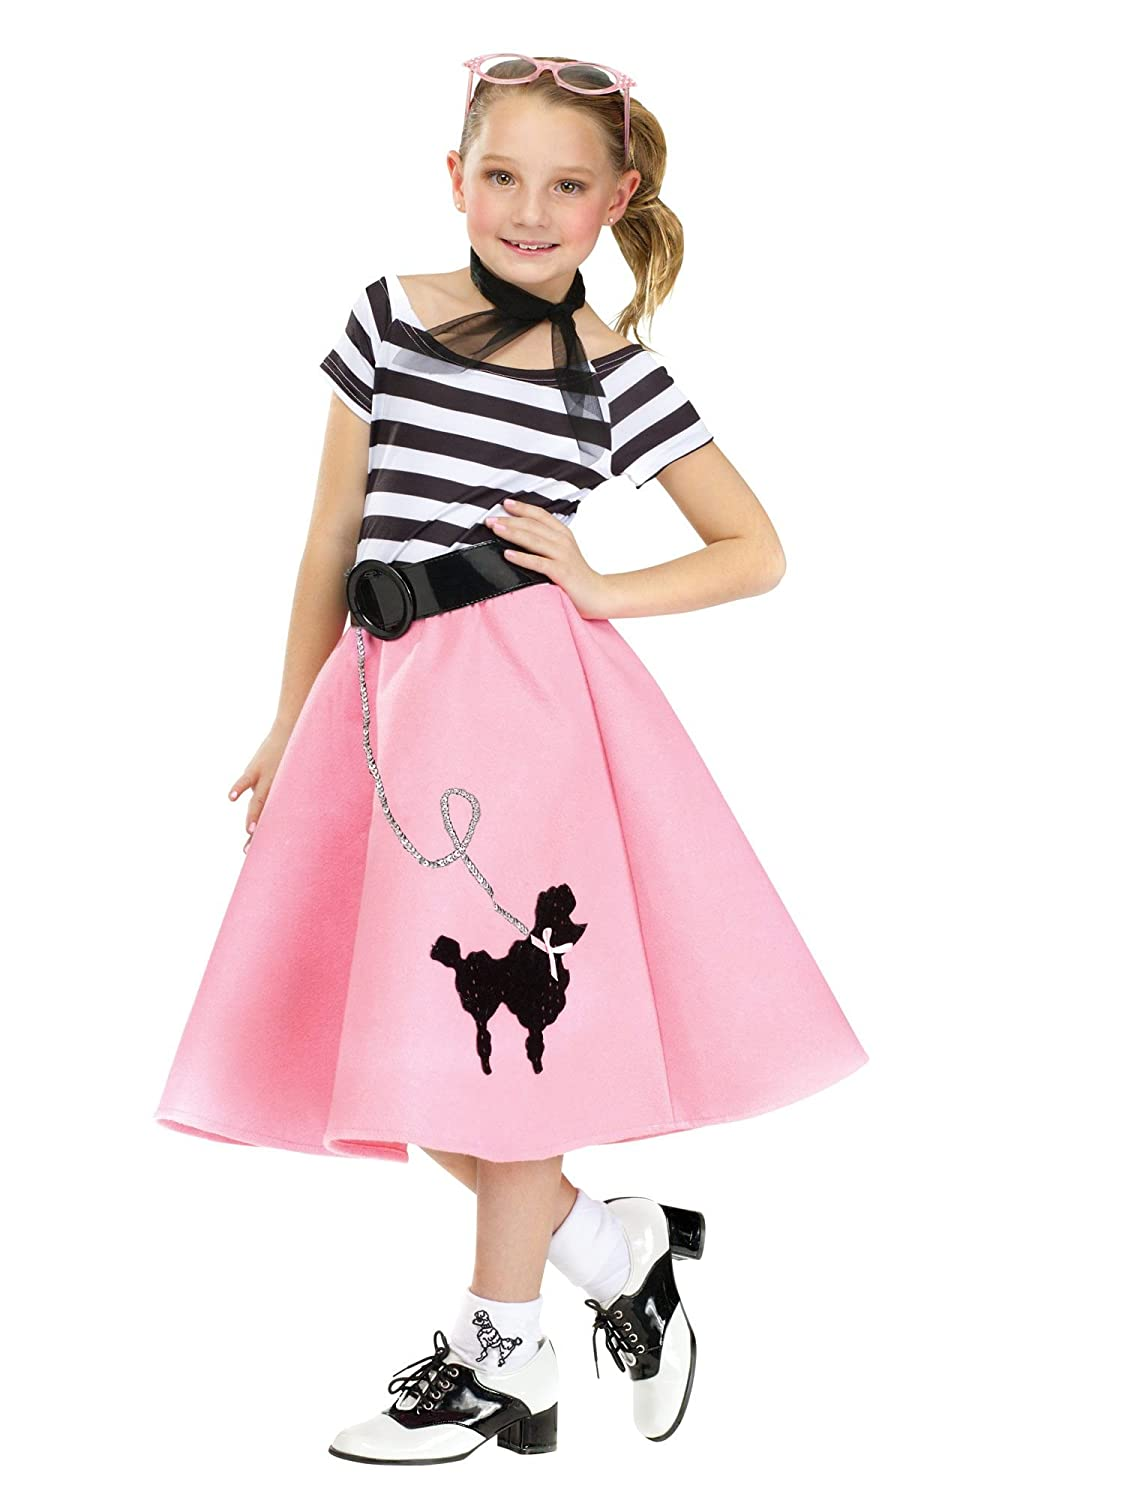 dd6320d56c135 Amazon.com: Big Girls' Poodle Skirt Dress: Clothing